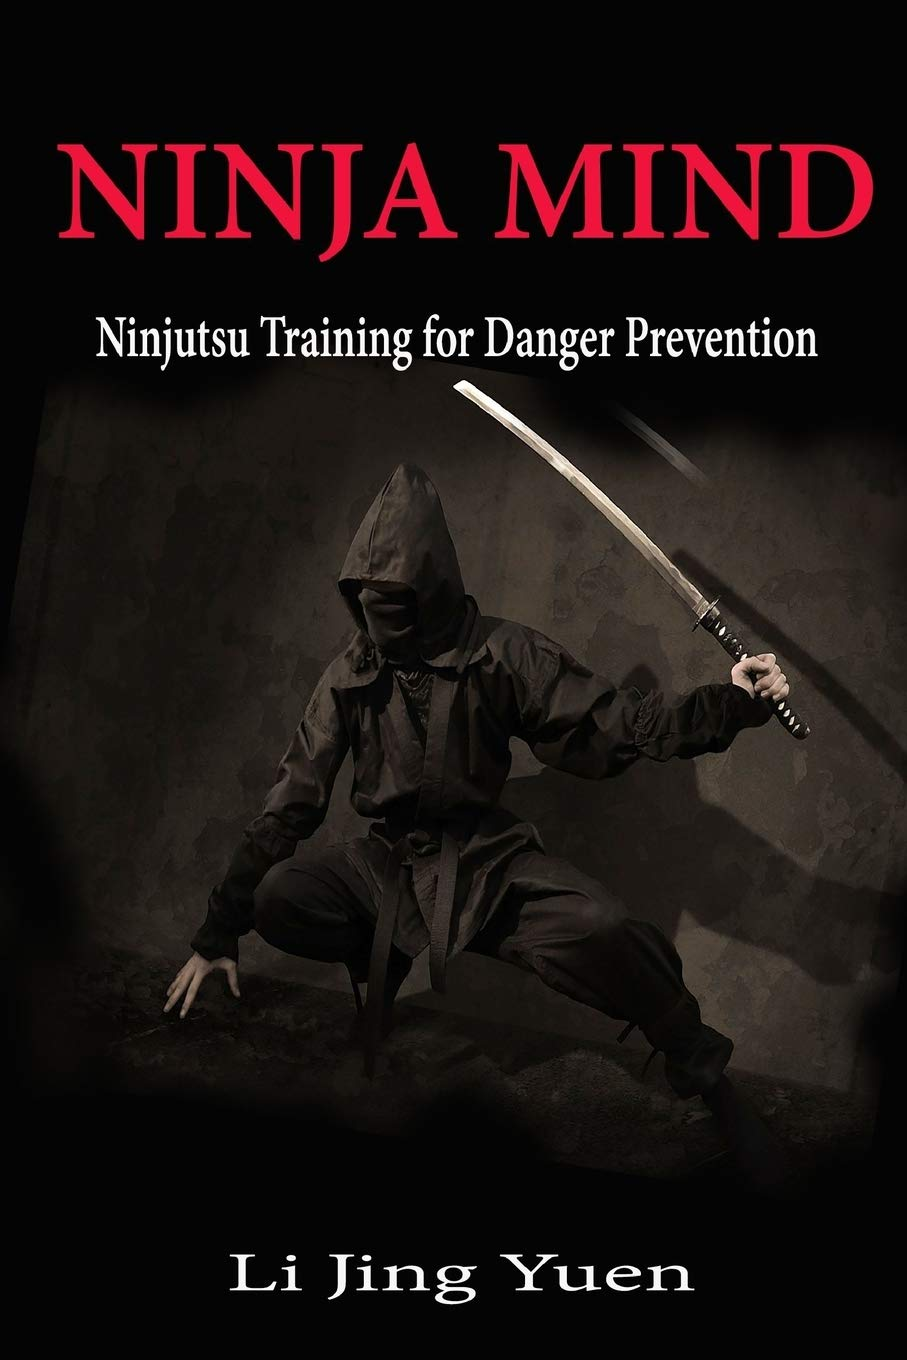 Amazon.com: Ninja Mind: Ninjutsu Training for Danger ...